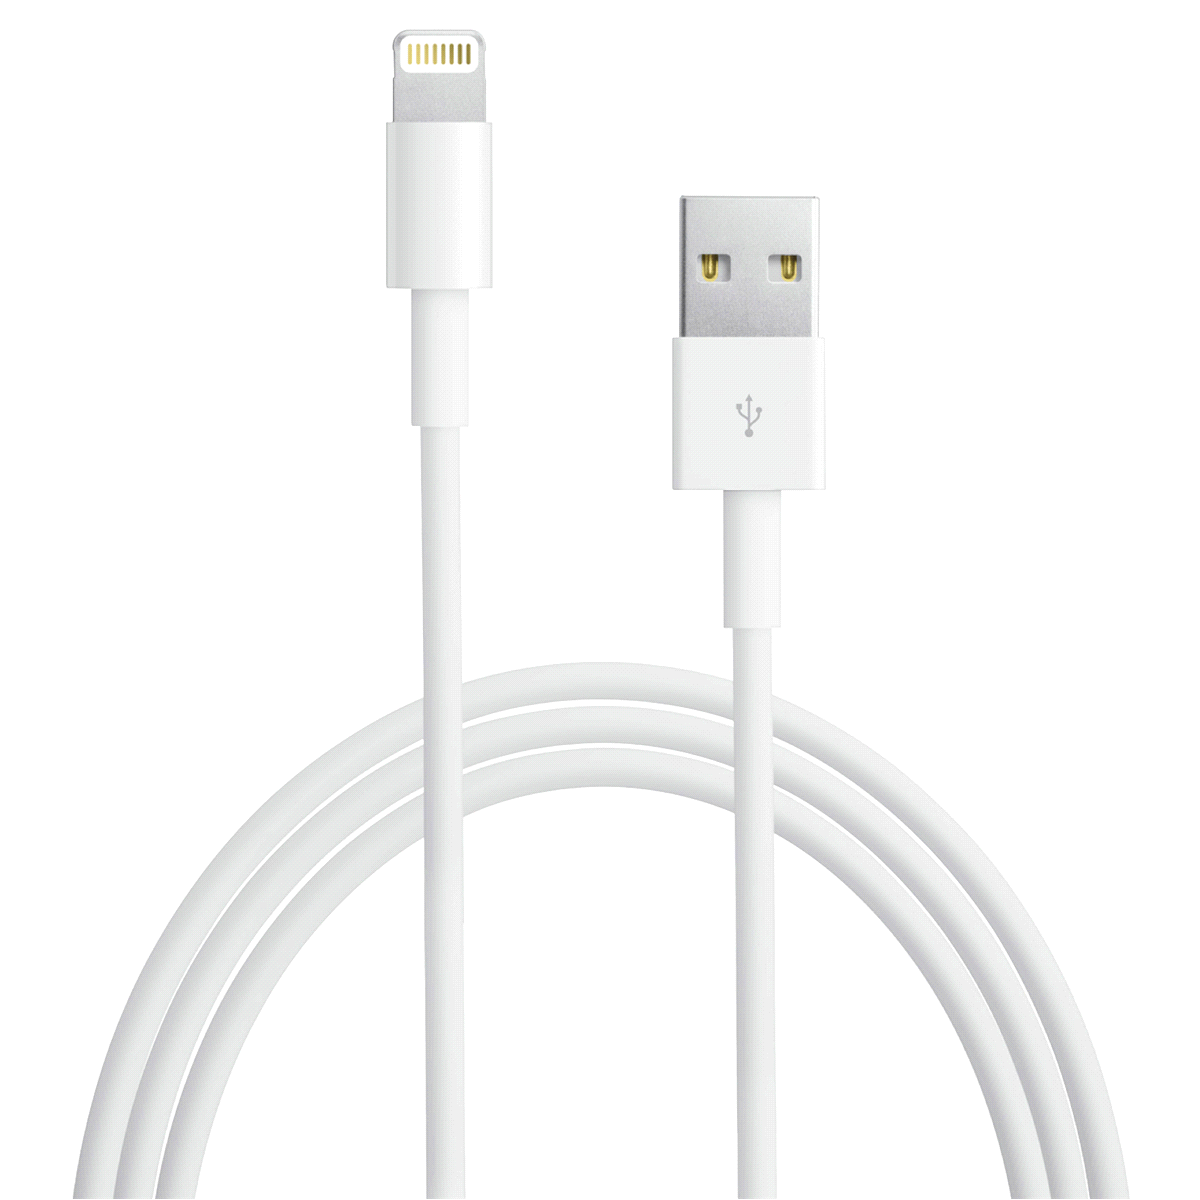 Certified Lightning USB Cable - 3 Feet